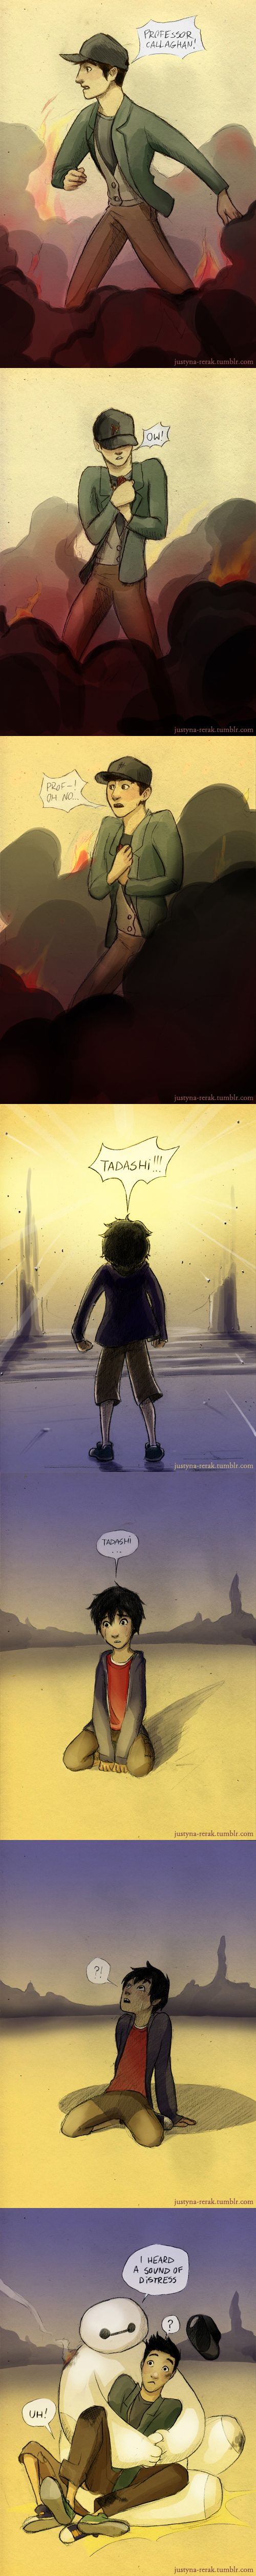 Big Hero 6 by Wind-up-Owl on DeviantArt <<< OH MY GOODNESS, THIS SHOULD'VE HAPPENED. XD<<< IF ONLY THIS WAS IN THE MOVIE!!!